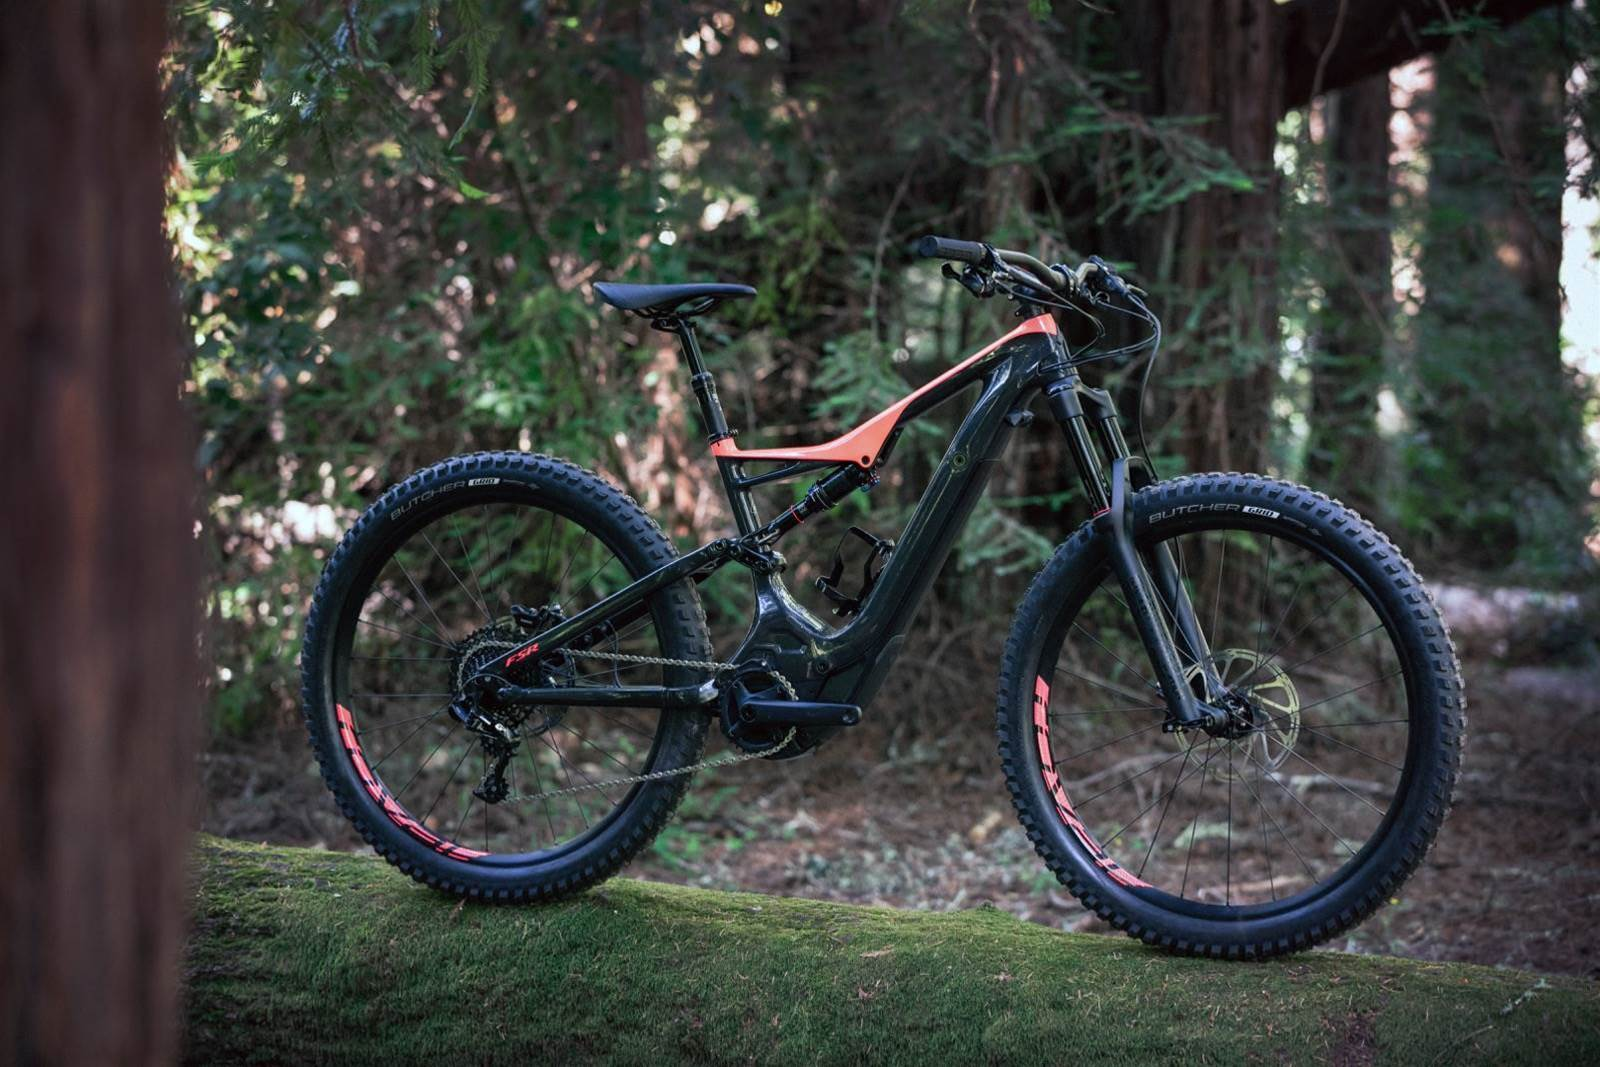 Specialized release the 2018 Turbo Levo Carbon FSR